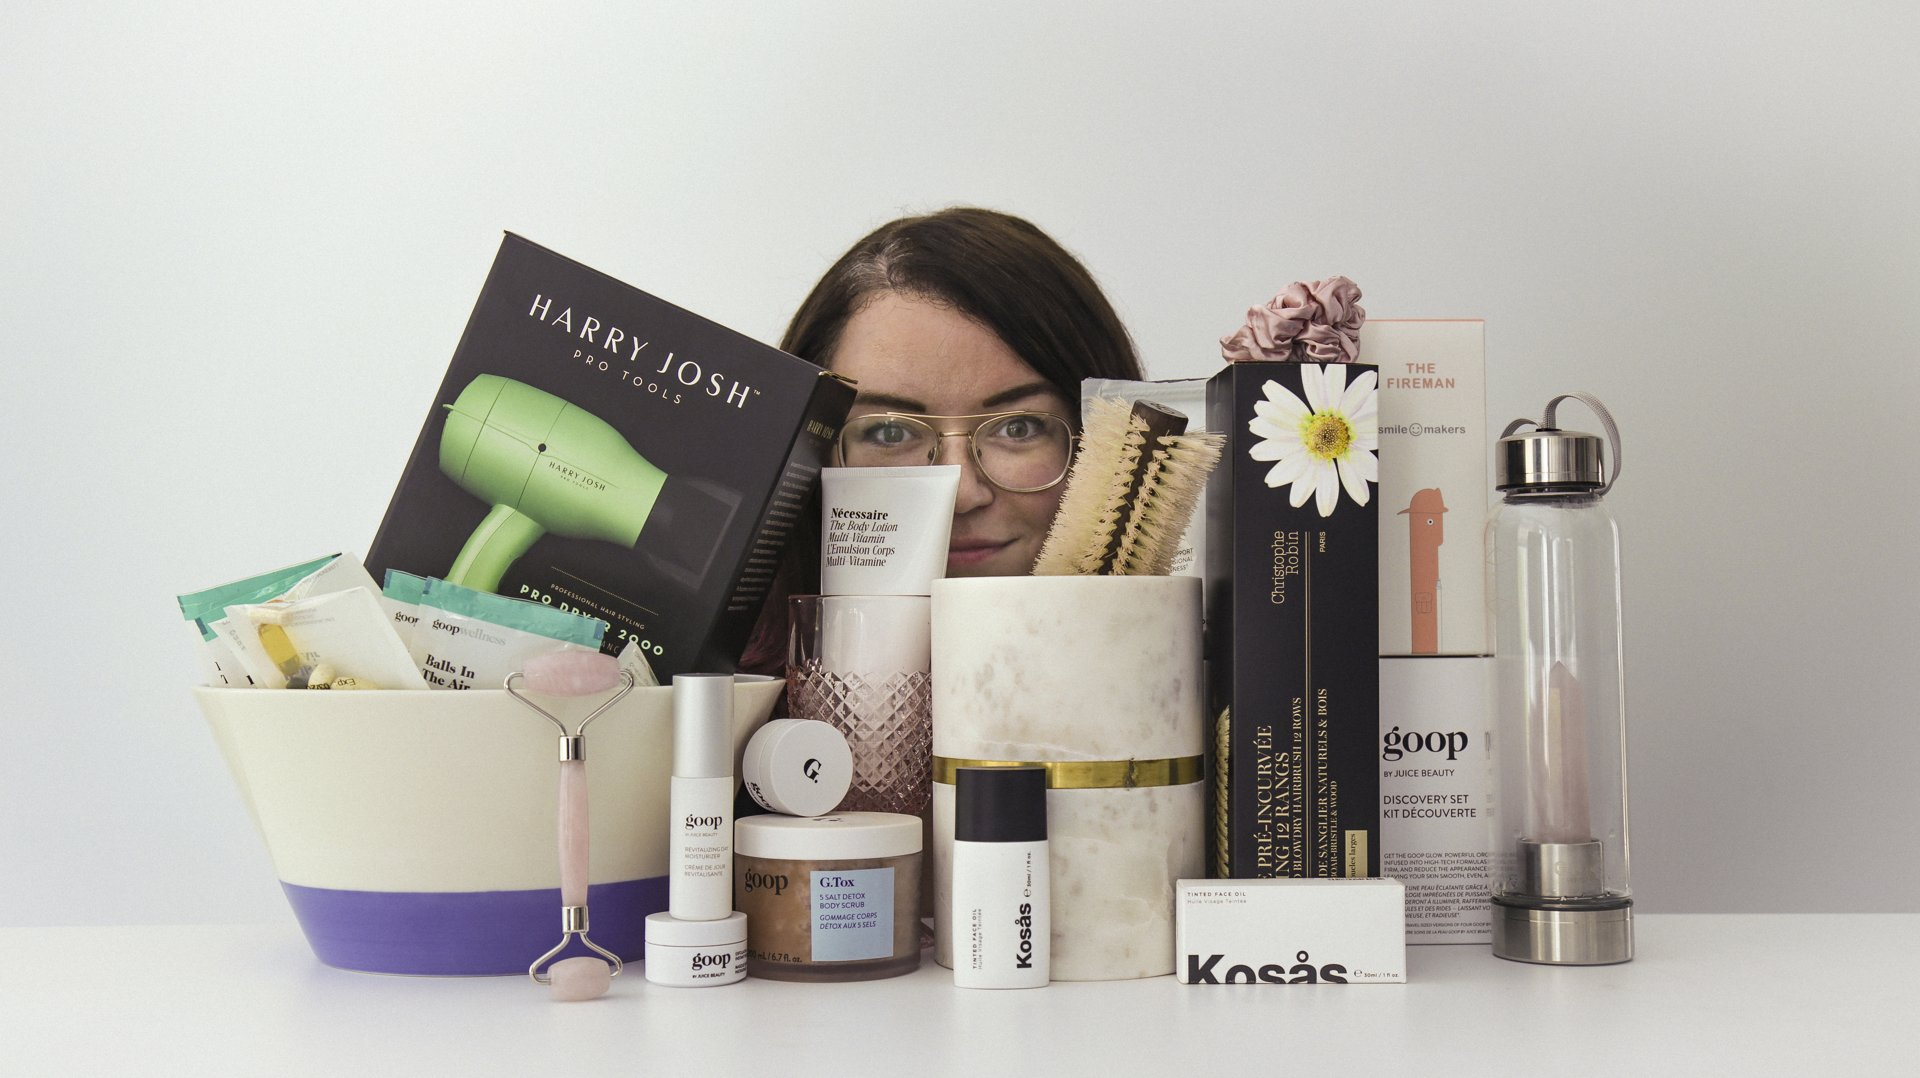 The writer's face, partially obscured by $1,279 of Goop products.